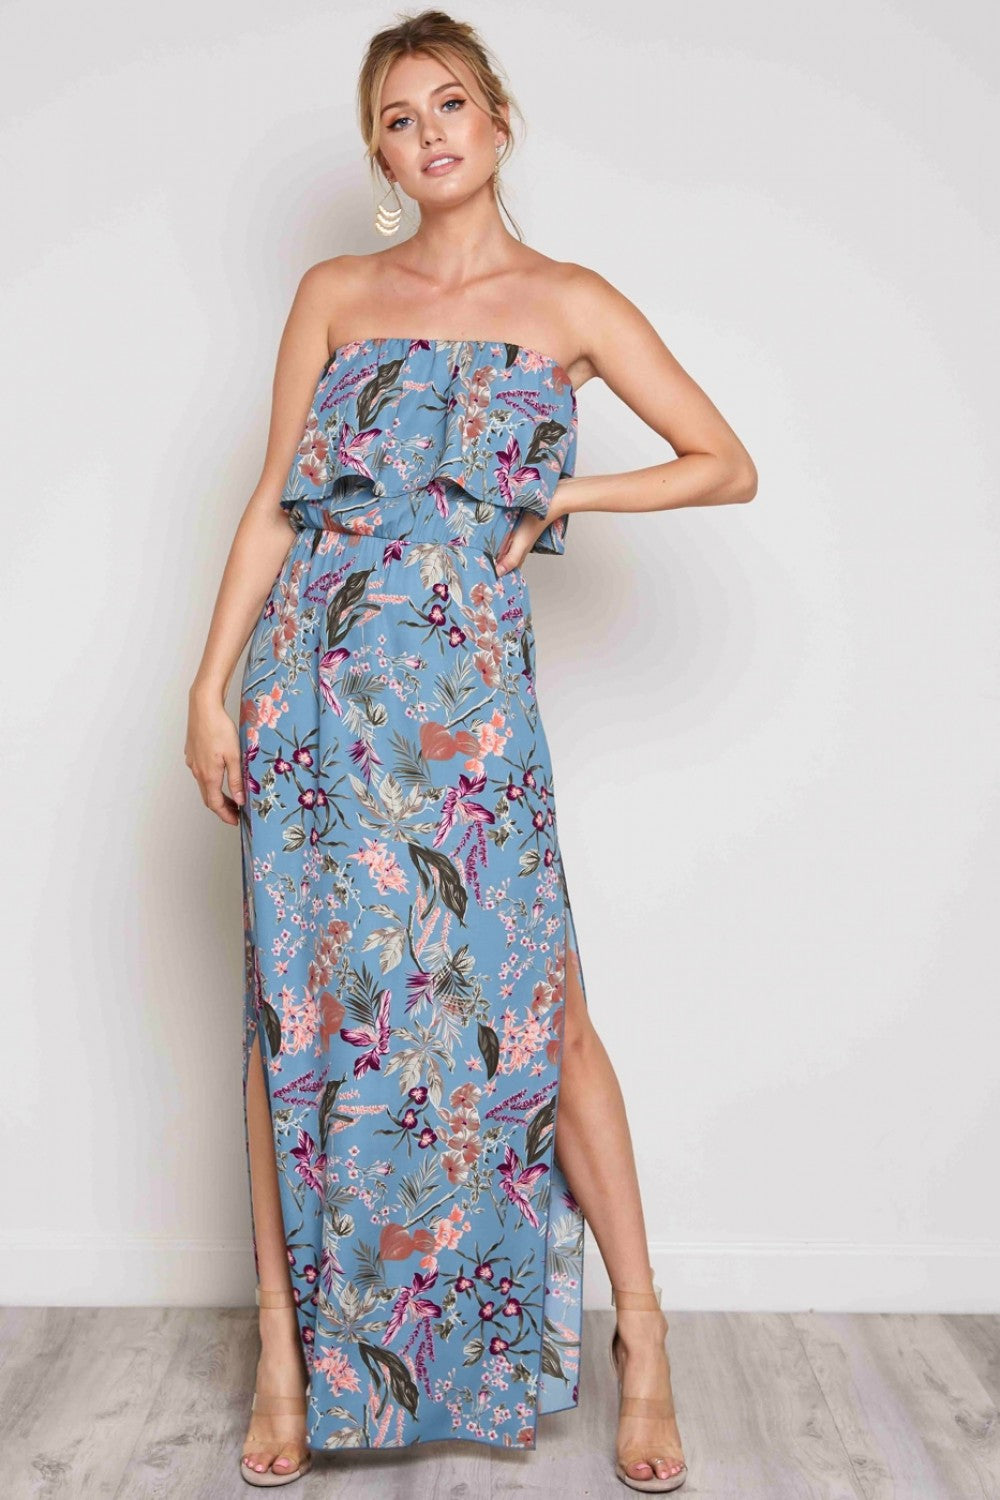 Fine And Floral Strapless Dress in Teal | Necessary Clothing